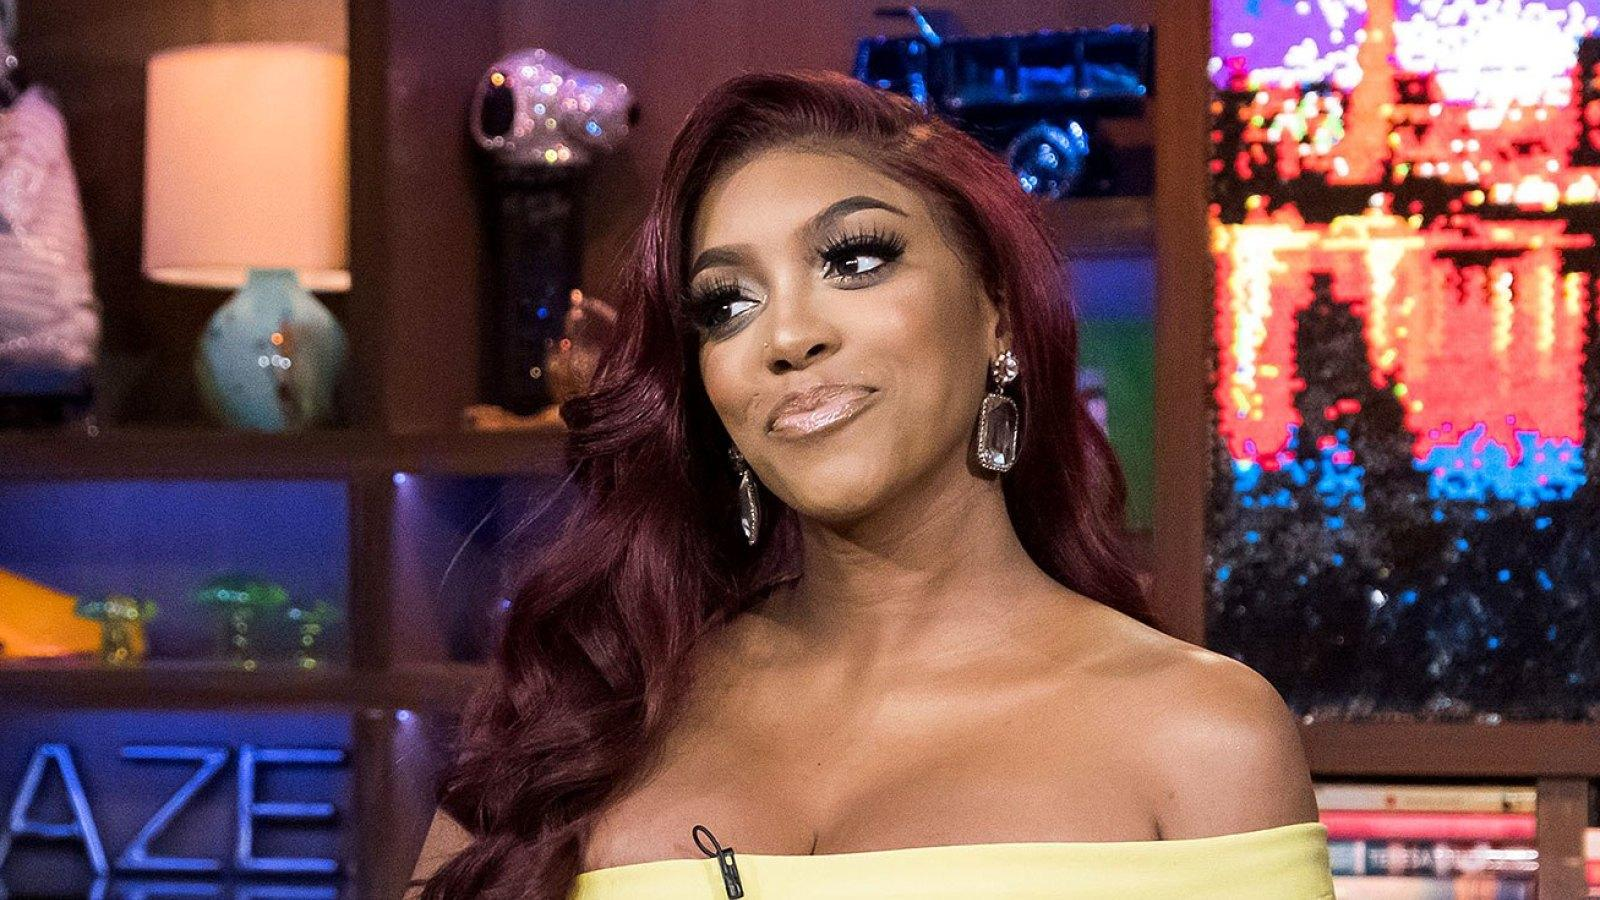 Porsha Williams Has A Cryptic Message For Her Fans - Let The Speculation Begin